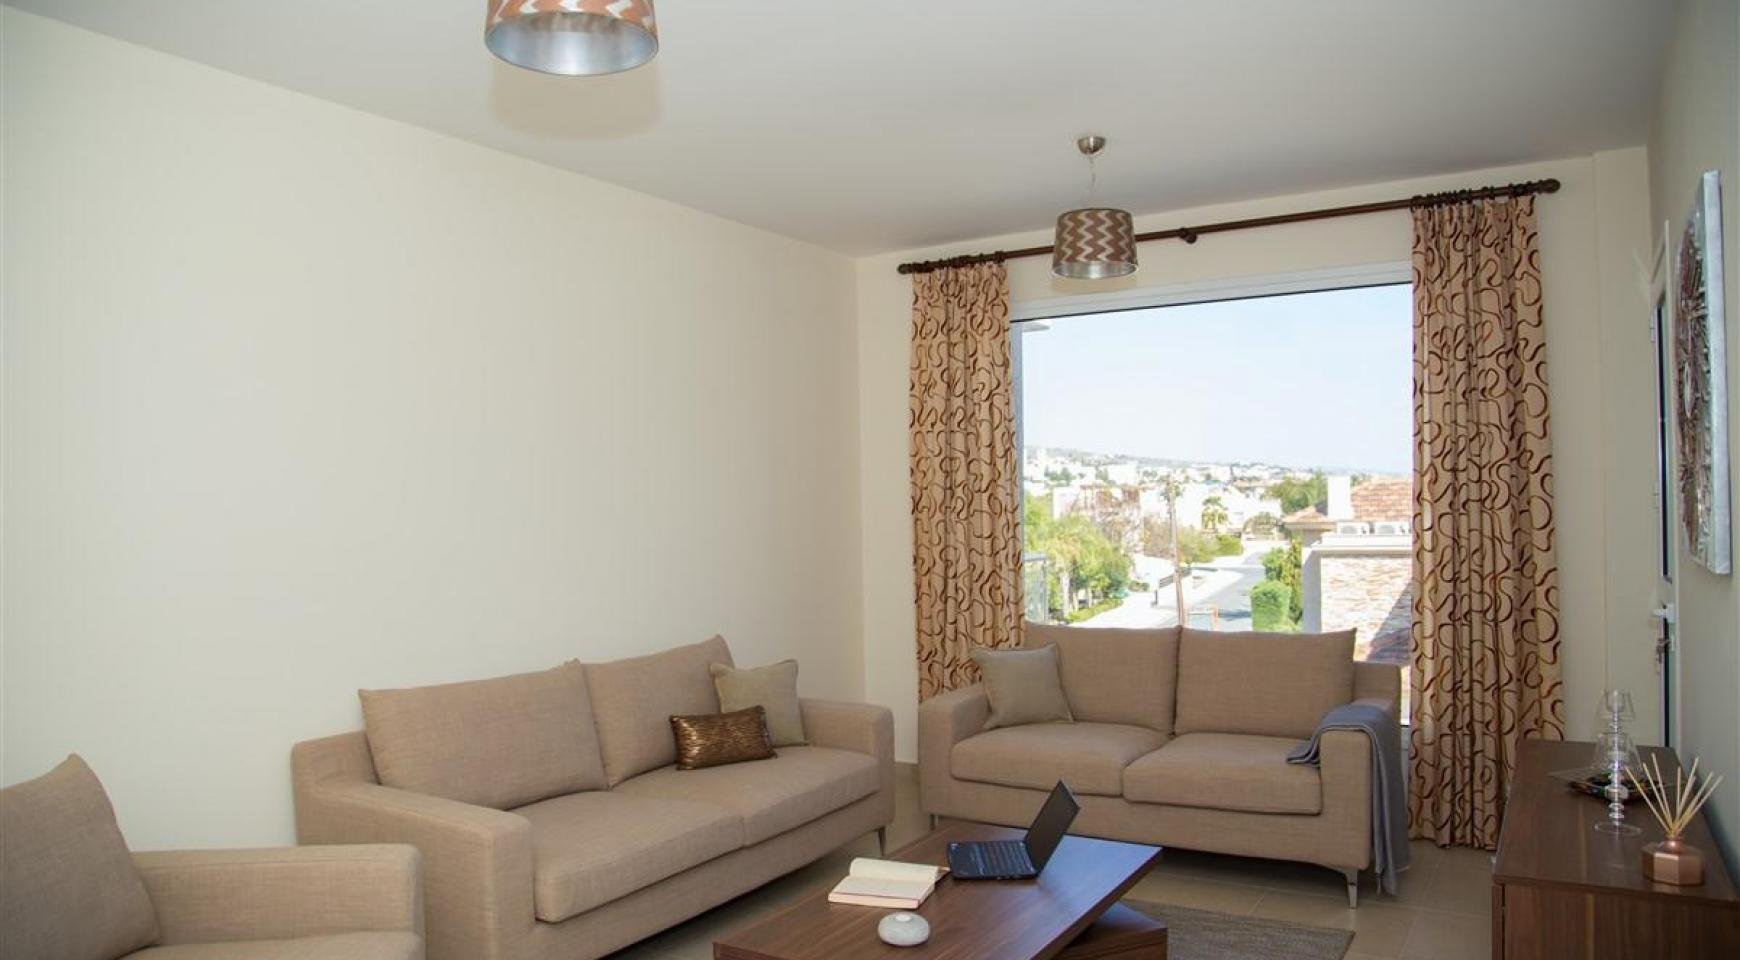 Modern 2 Bedroom Apartment Christina 303 in Potamos Germasogeia - 2